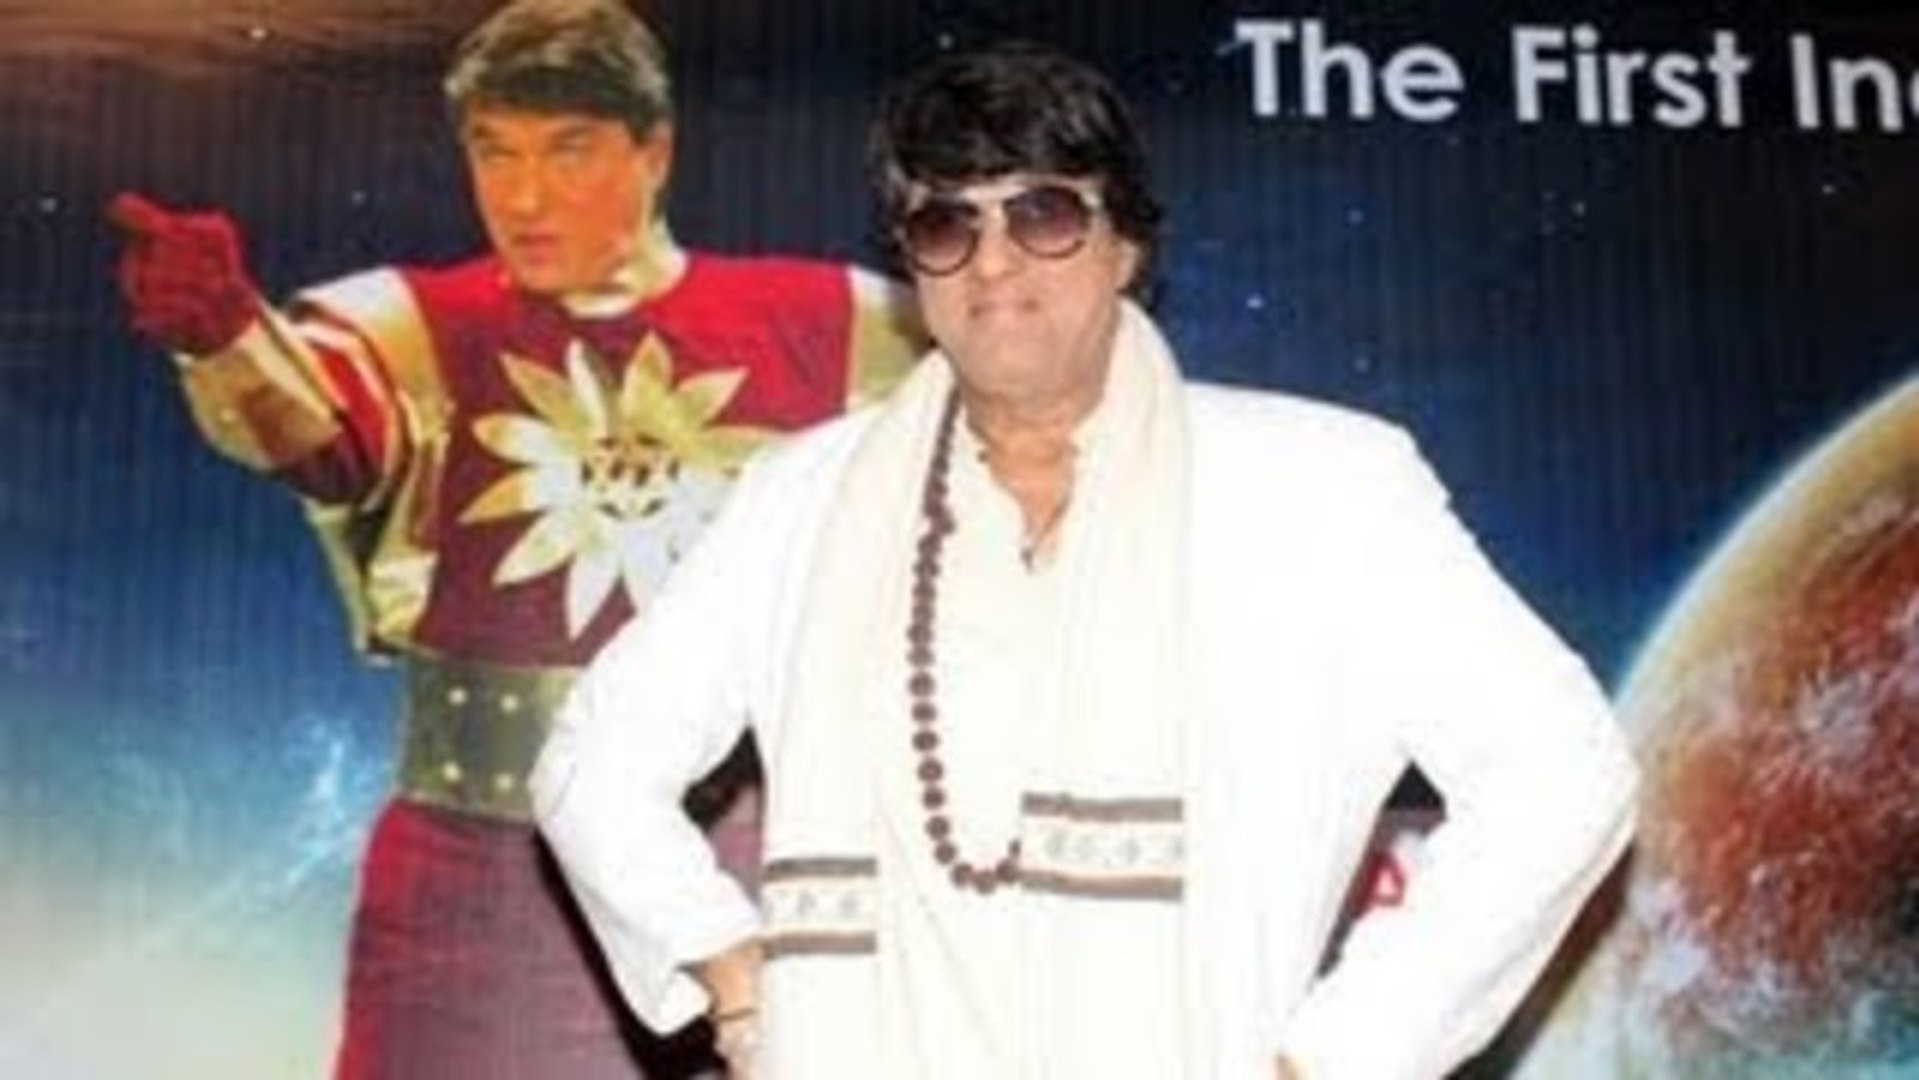 I Can't Play Negative Role - Mukesh Khanna (Shaktimaan)